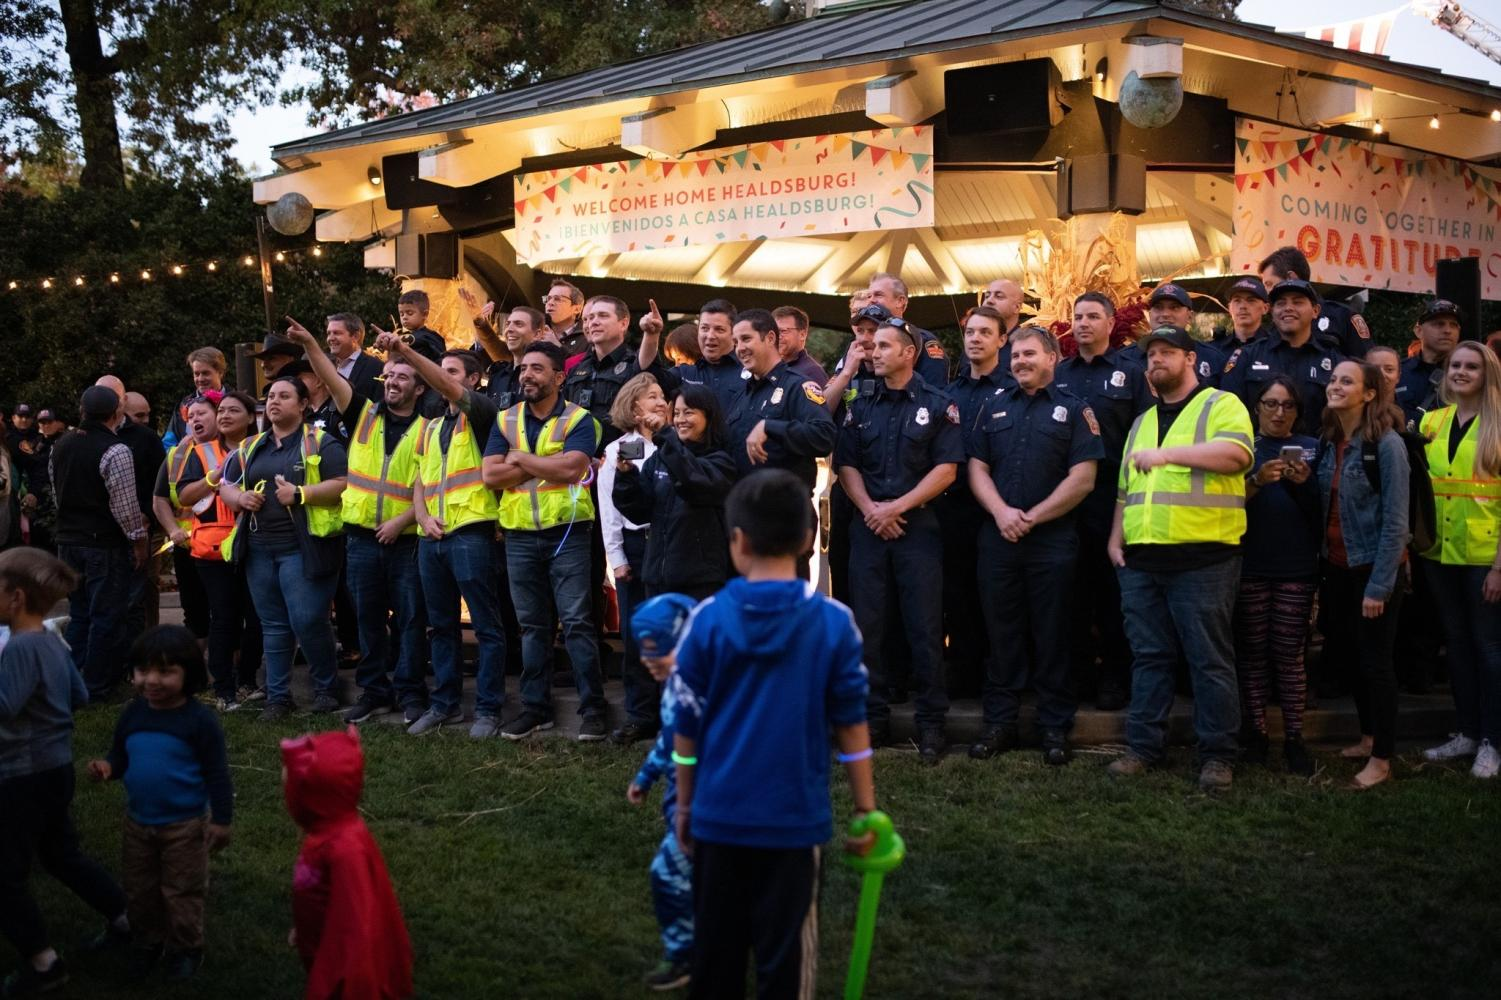 Firefighters, police officers and Healdsburg city staff gather Friday, Nov. 8 at the Healdsburg Plaza on the night of